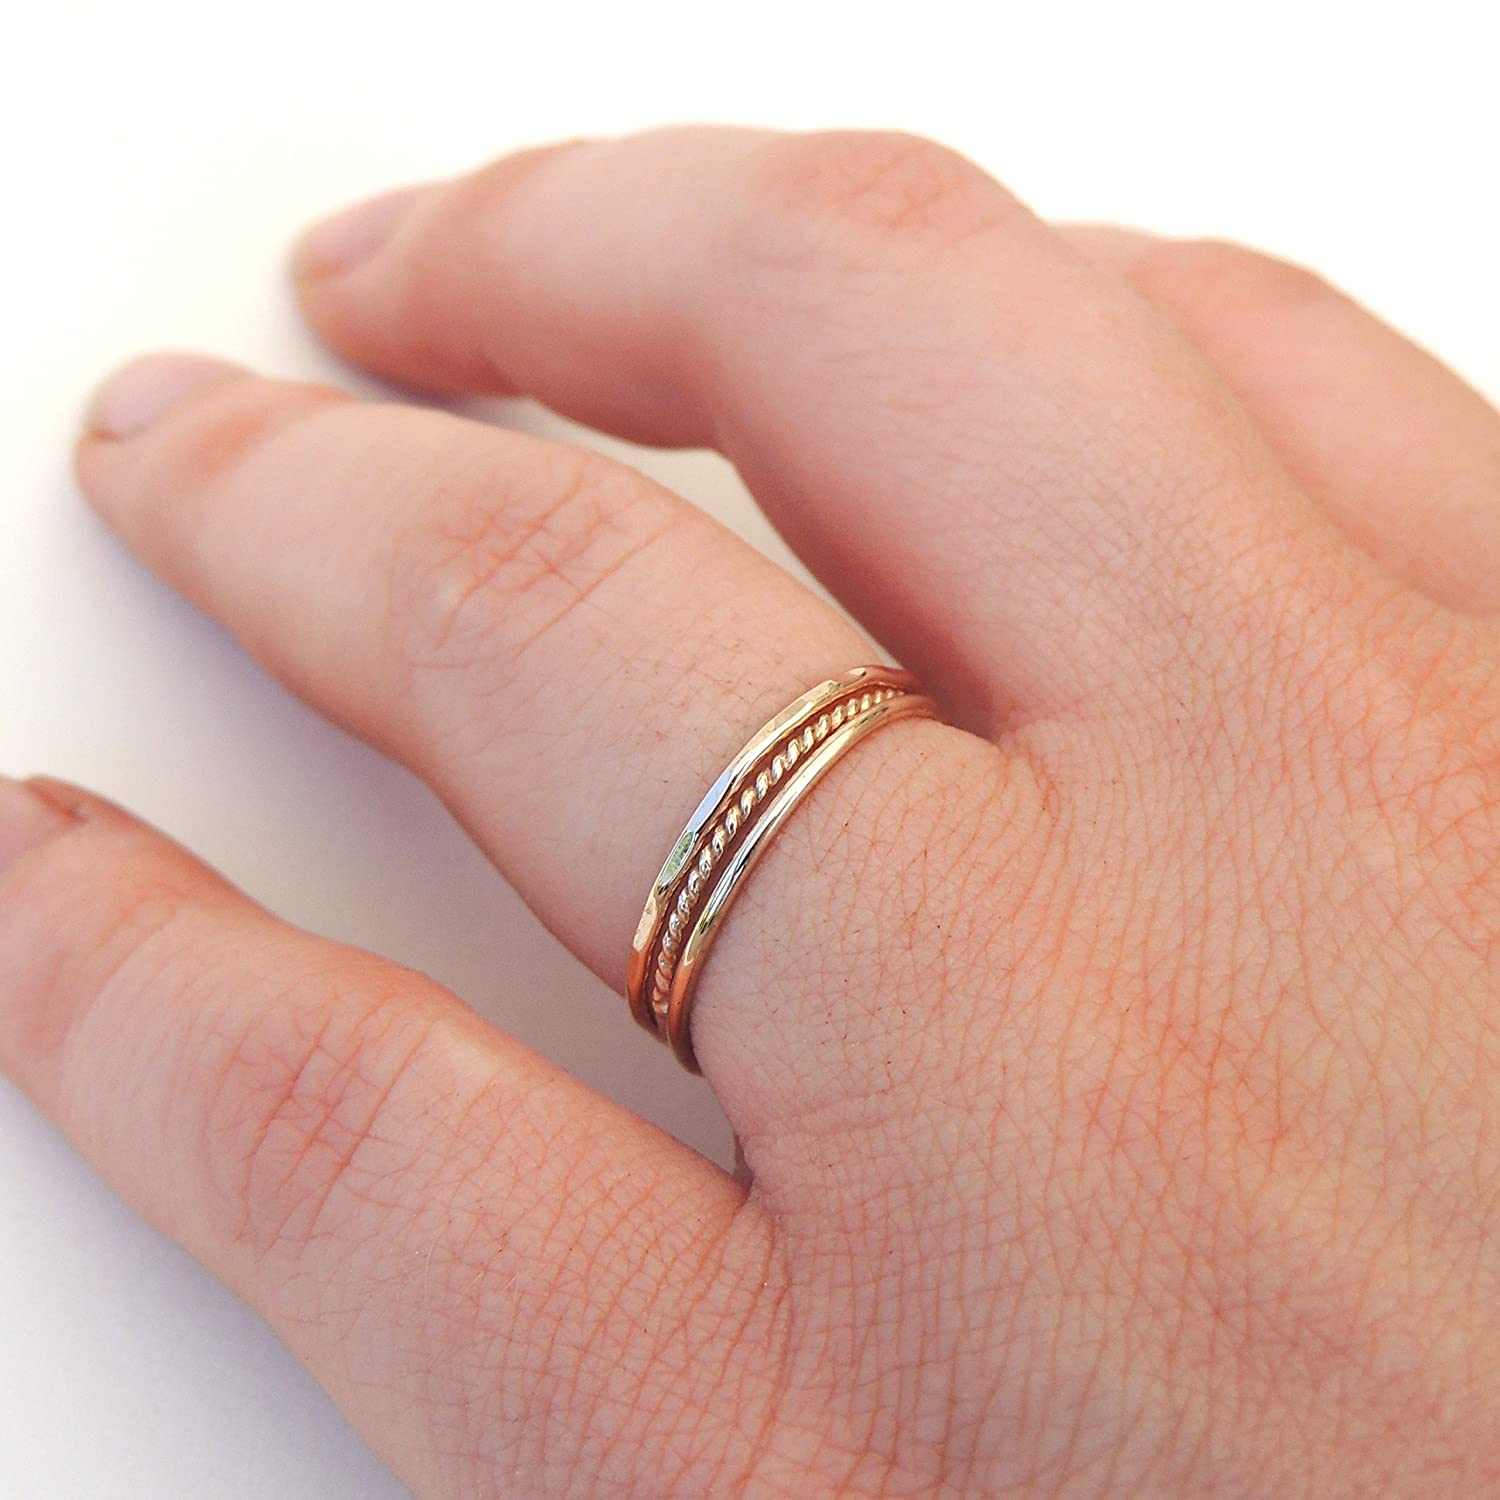 Amazon.com: Delicate Textured Stacking Rings Set of 3, Sterling ...